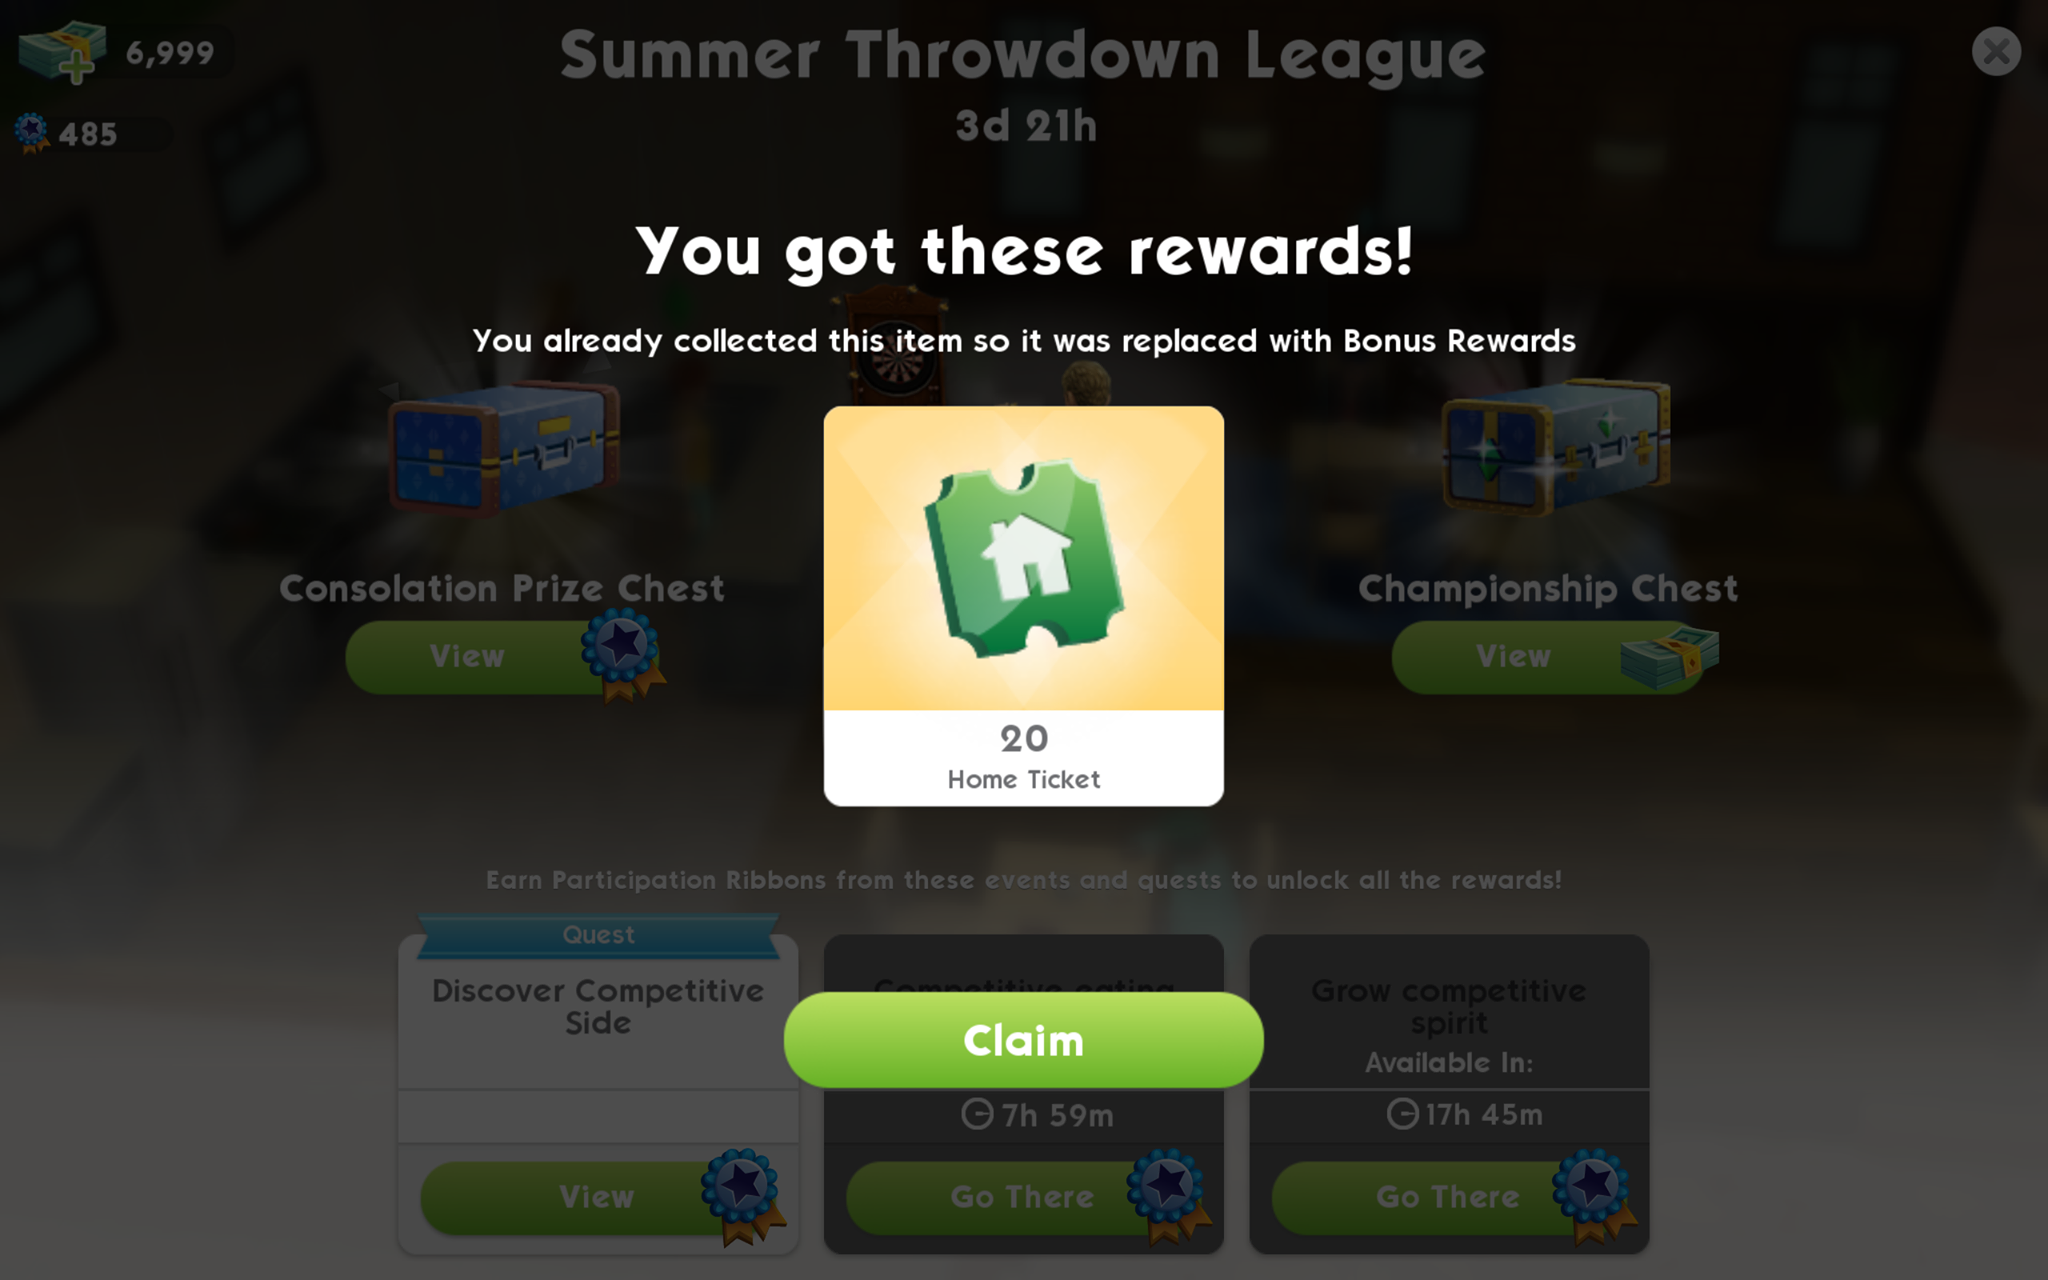 How To Complete The Summer Throwdown League Event Dartboard In